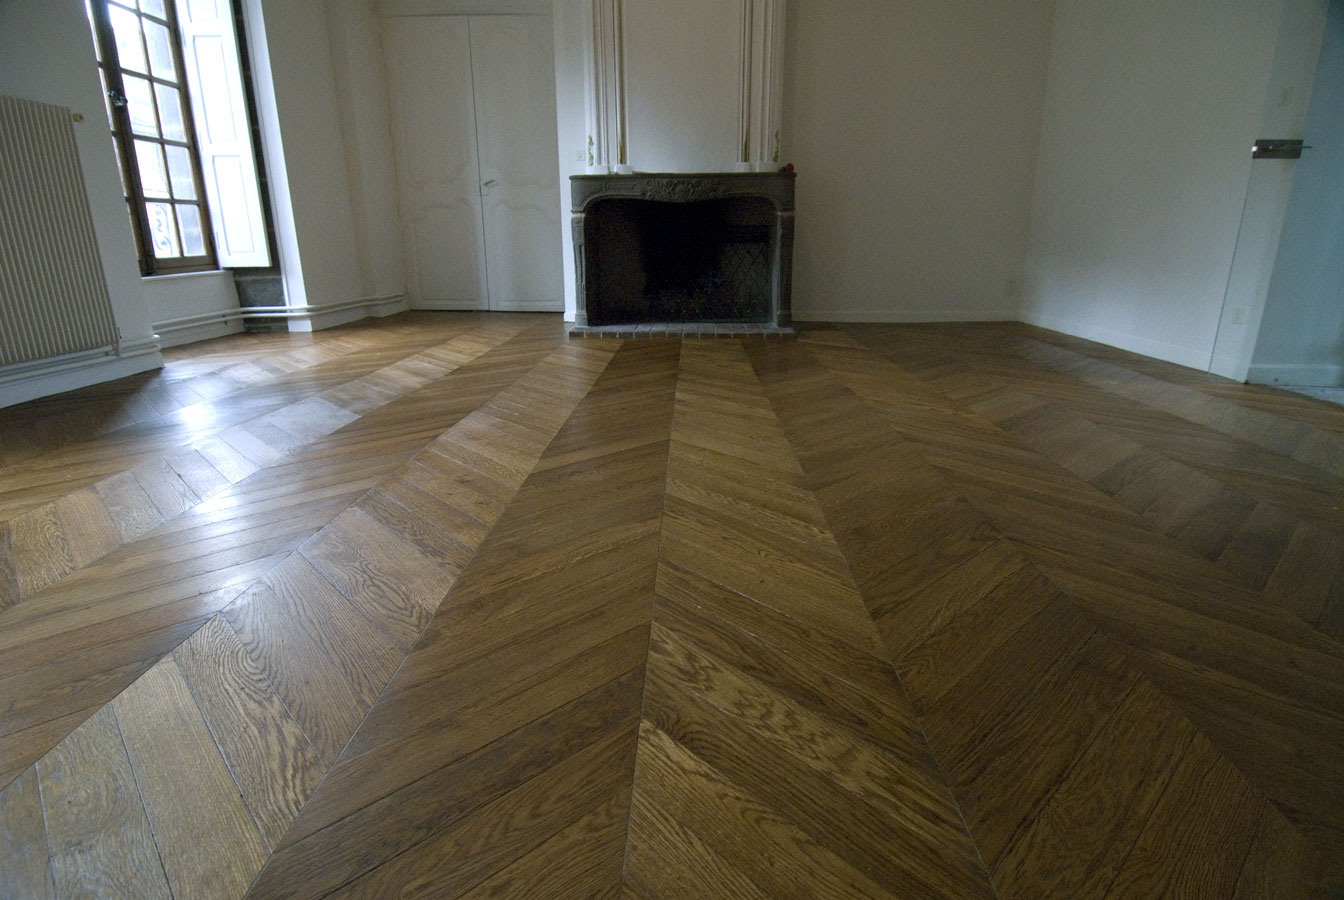 vue g n rale du parquet point de hongrie parquet chevron dans un bel appartement ancien n 441. Black Bedroom Furniture Sets. Home Design Ideas